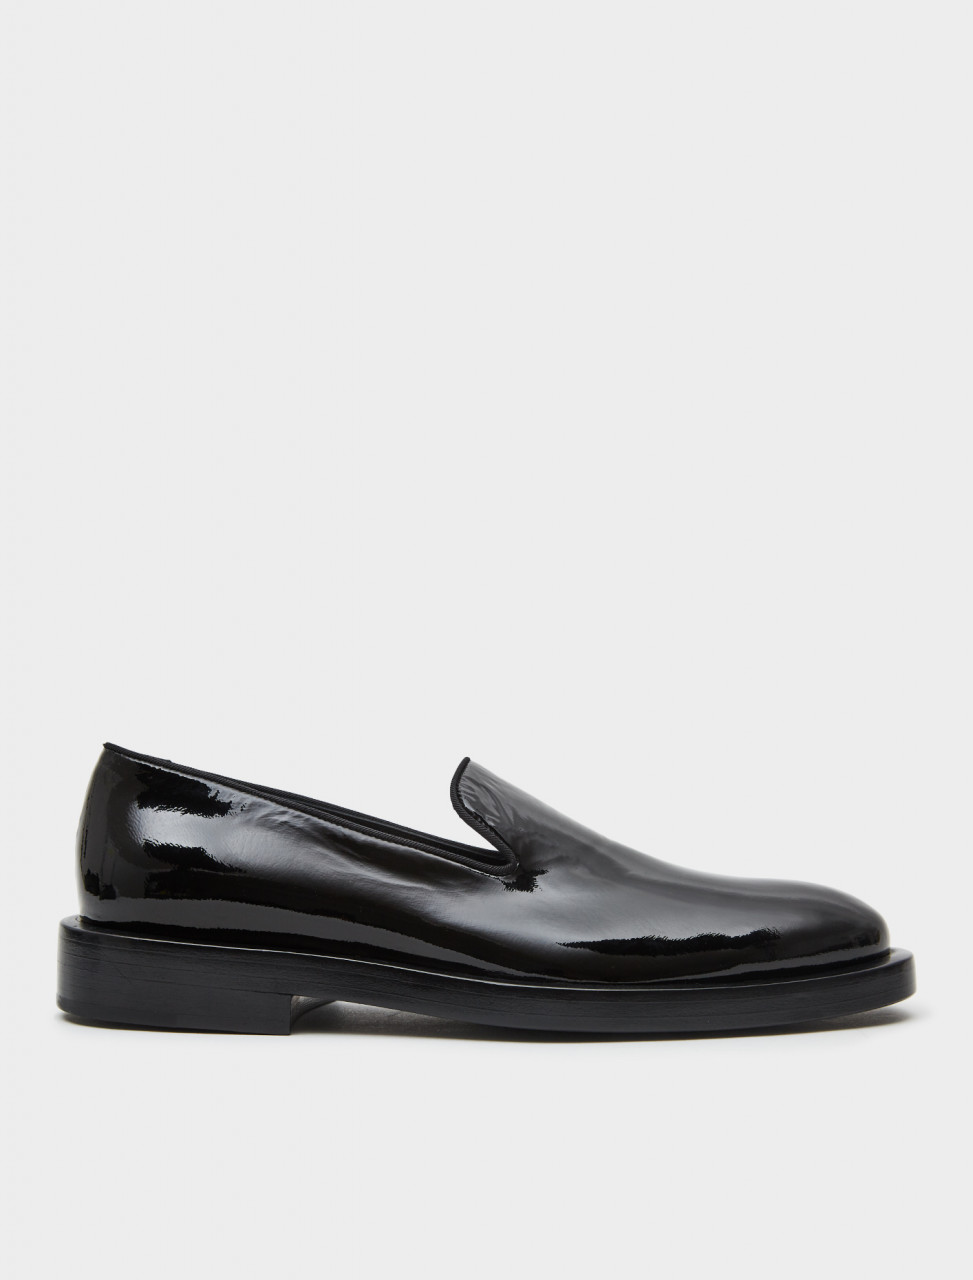 130-JI34540B-12270-001 JIL SANDER LEATHER LOAFER BLACK SIDE